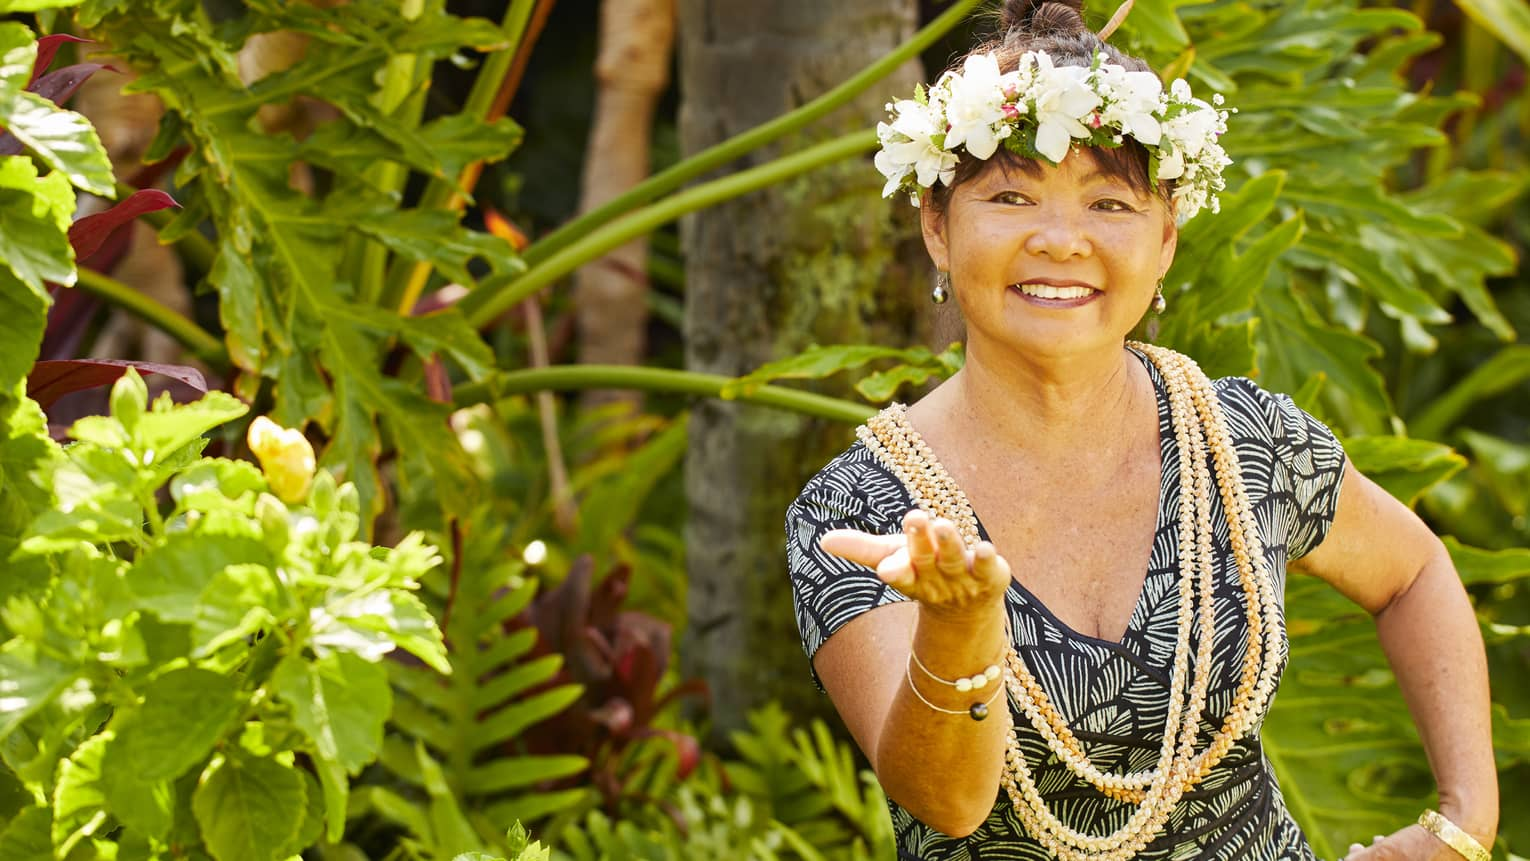 A woman practices hula with a flower crown